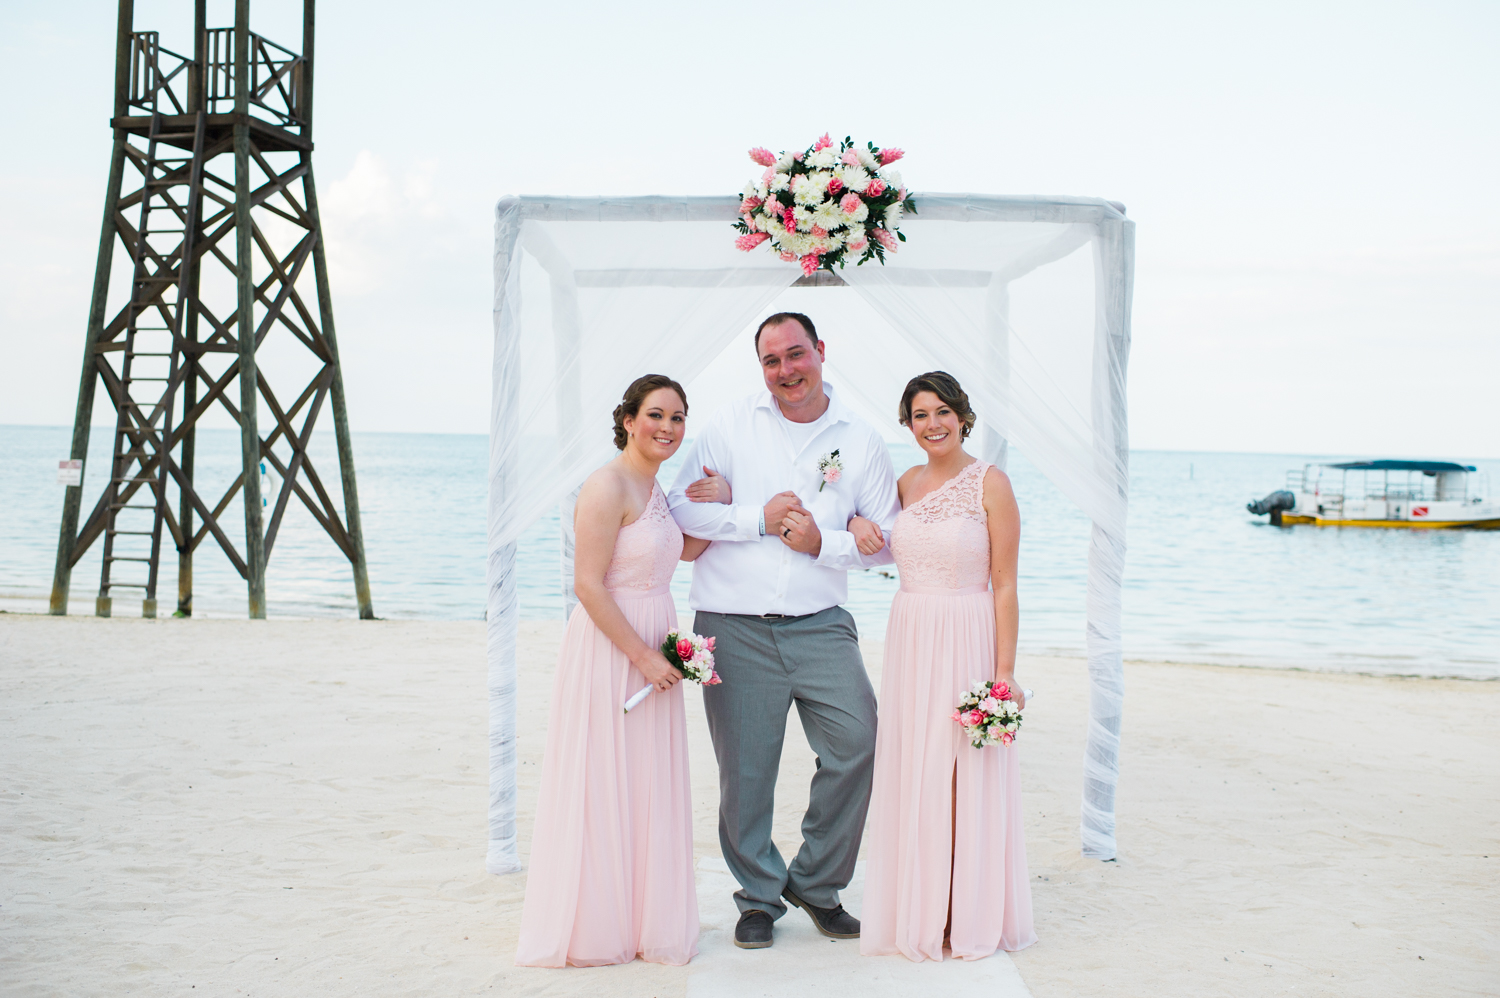 JadeandRyan-Montego-Bay-Jamaica-Wedding-Iberostar-Resort-Beach-72.jpg